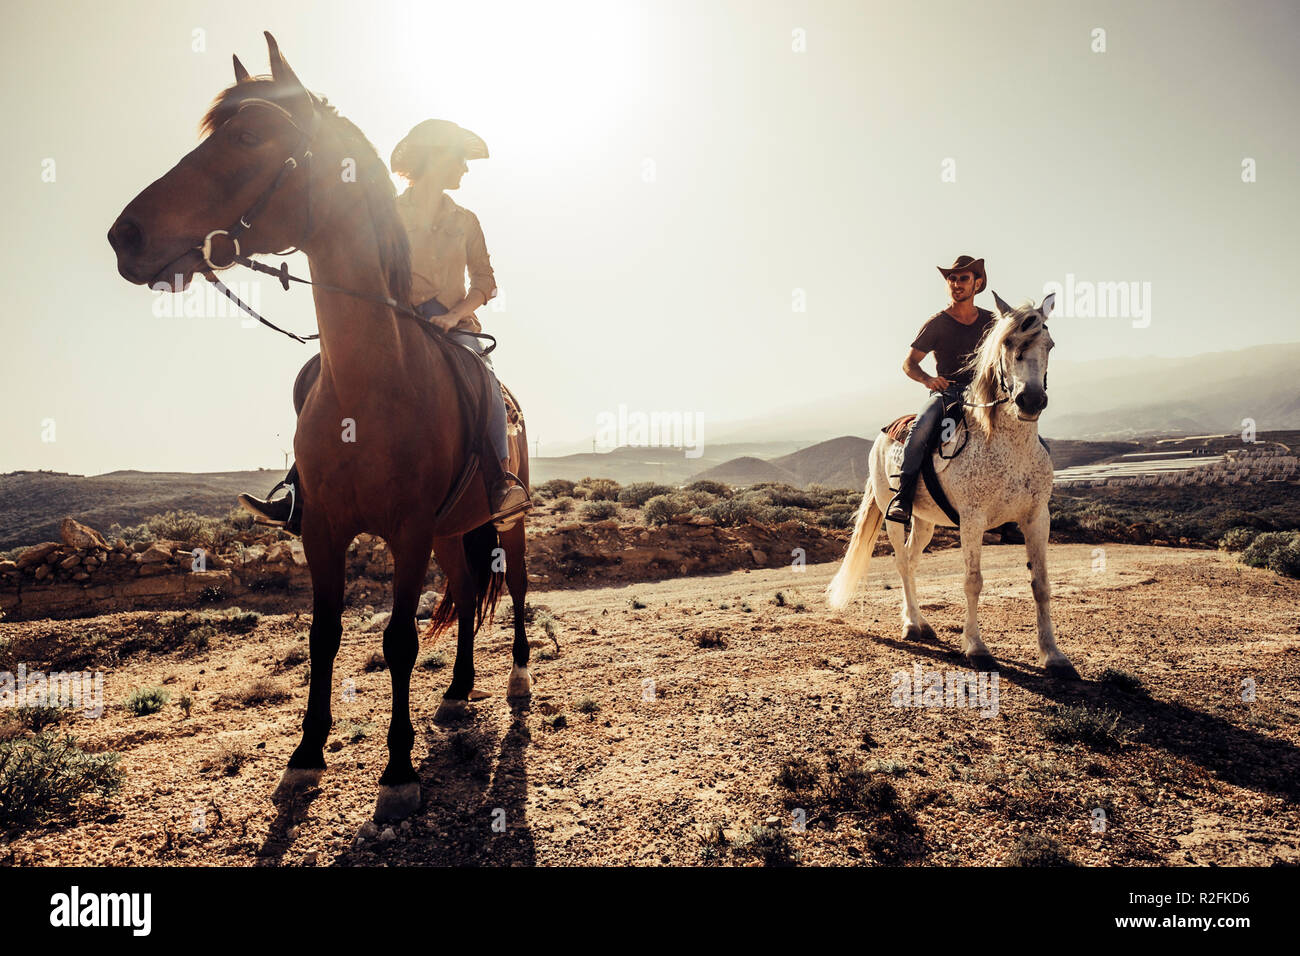 couple of horses and cowboys male and female ride free in the nature at the mountains in tenerife. lifestyle and alternative works or leisure activity concept for man and woman Stock Photo